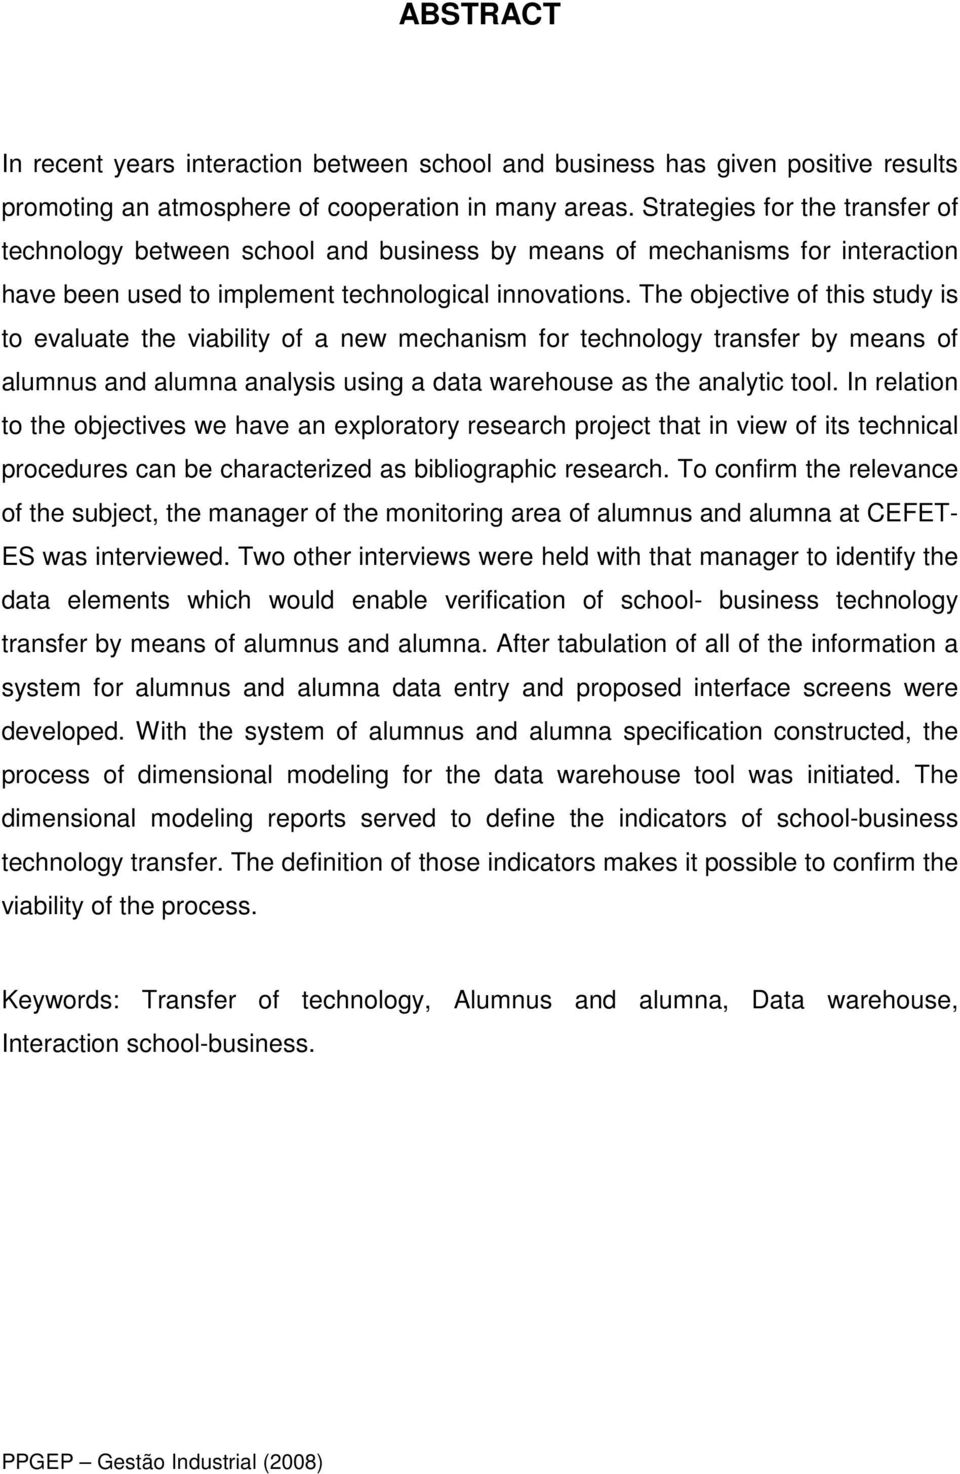 The objective of this study is to evaluate the viability of a new mechanism for technology transfer by means of alumnus and alumna analysis using a data warehouse as the analytic tool.